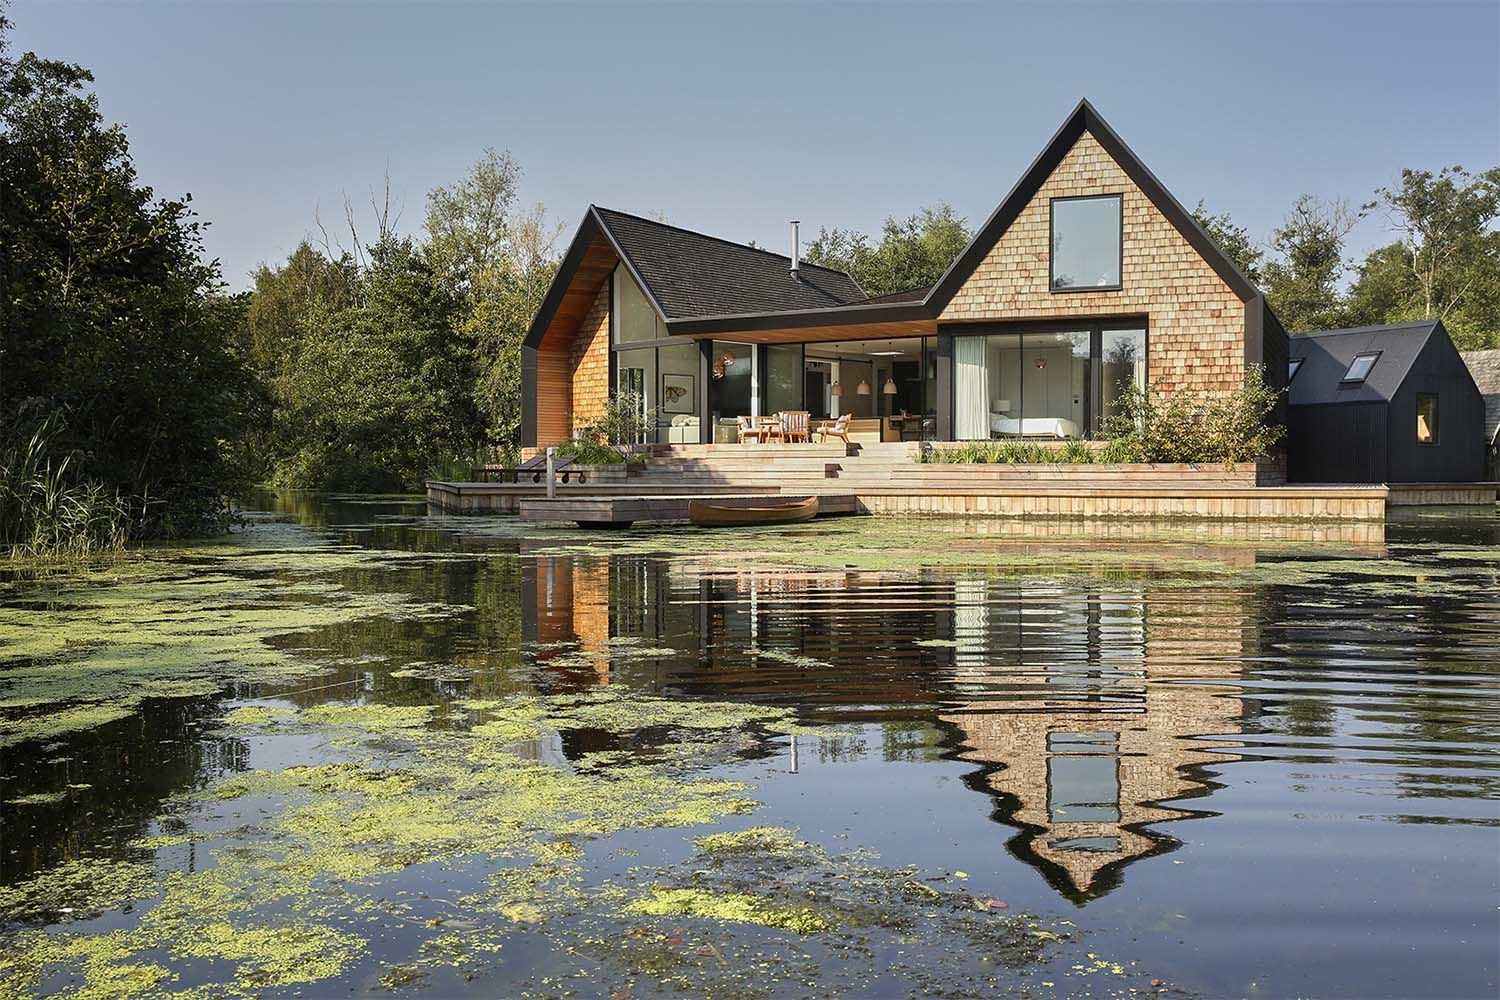 Offthegrid English home nestled on a secluded lagoon